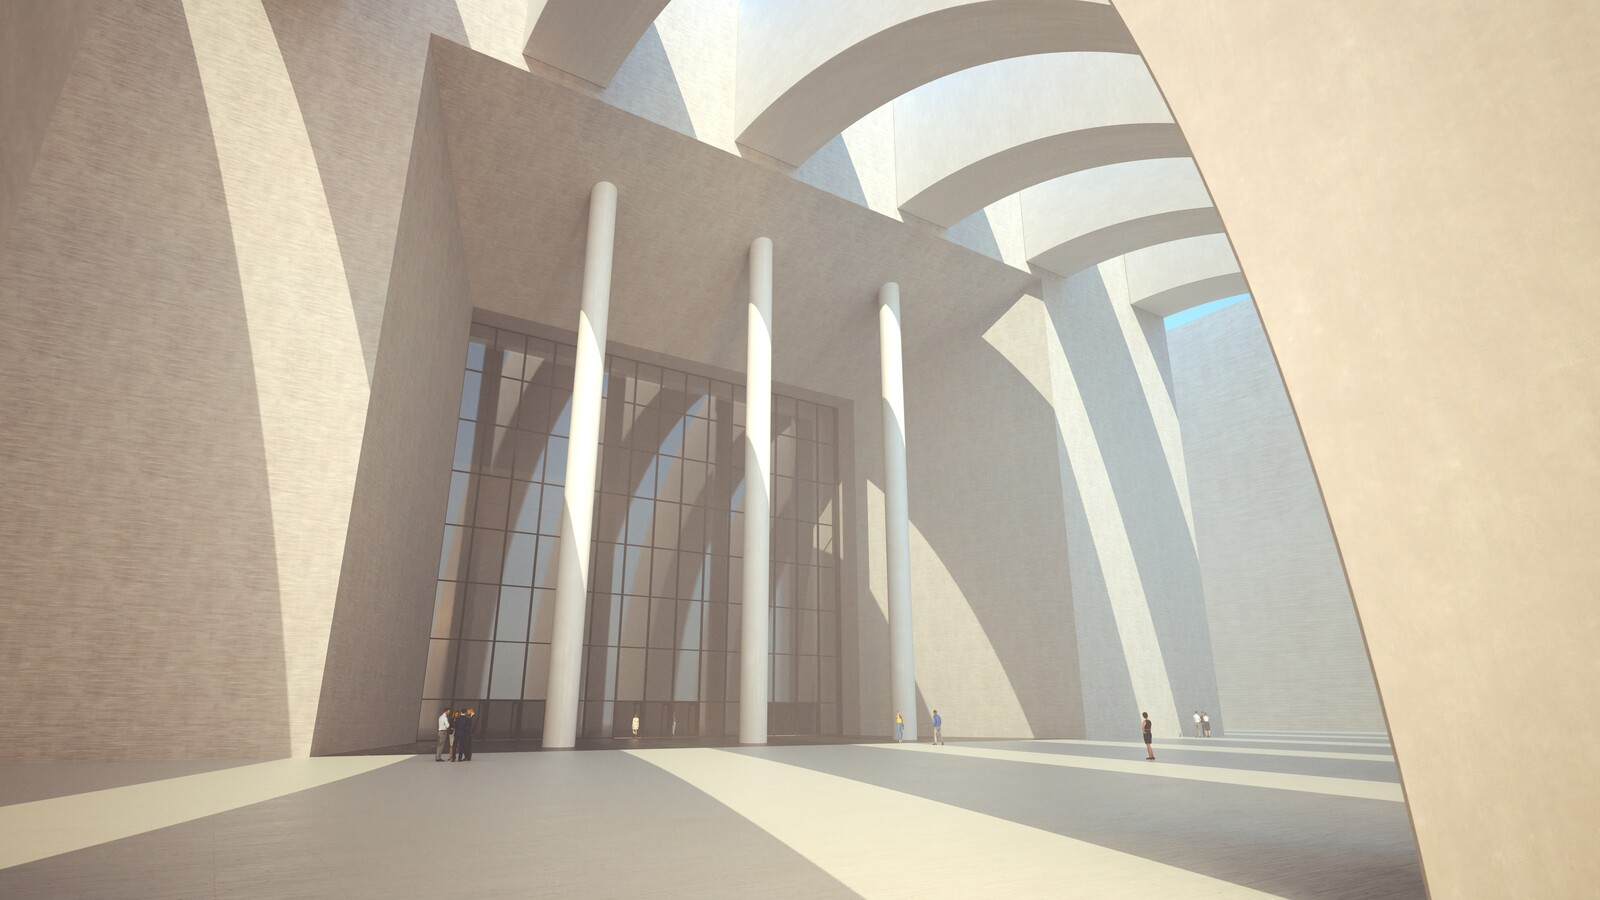 SketchUp 2019 + Thea Render  Large Hall Main Entry_SU8 2018-Scene 7 B Emitter 3840x2160 43m48s 1024 sp 01